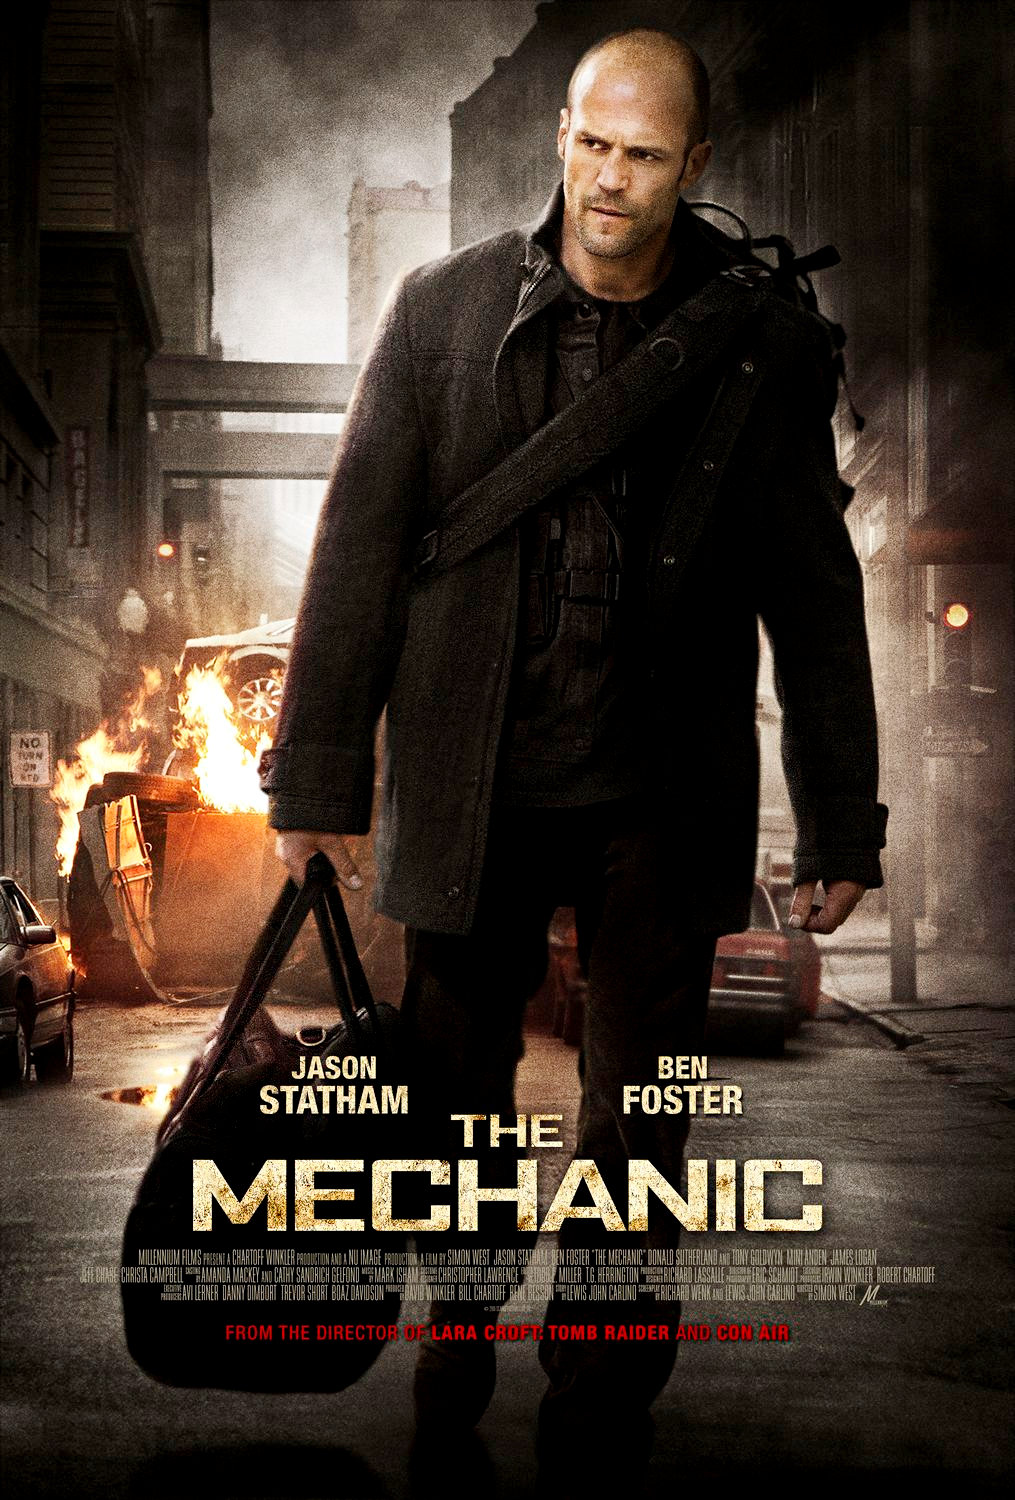 http://www.movie-corner.com/wp-content/uploads/2011/02/The-Mechanic-2011.jpg